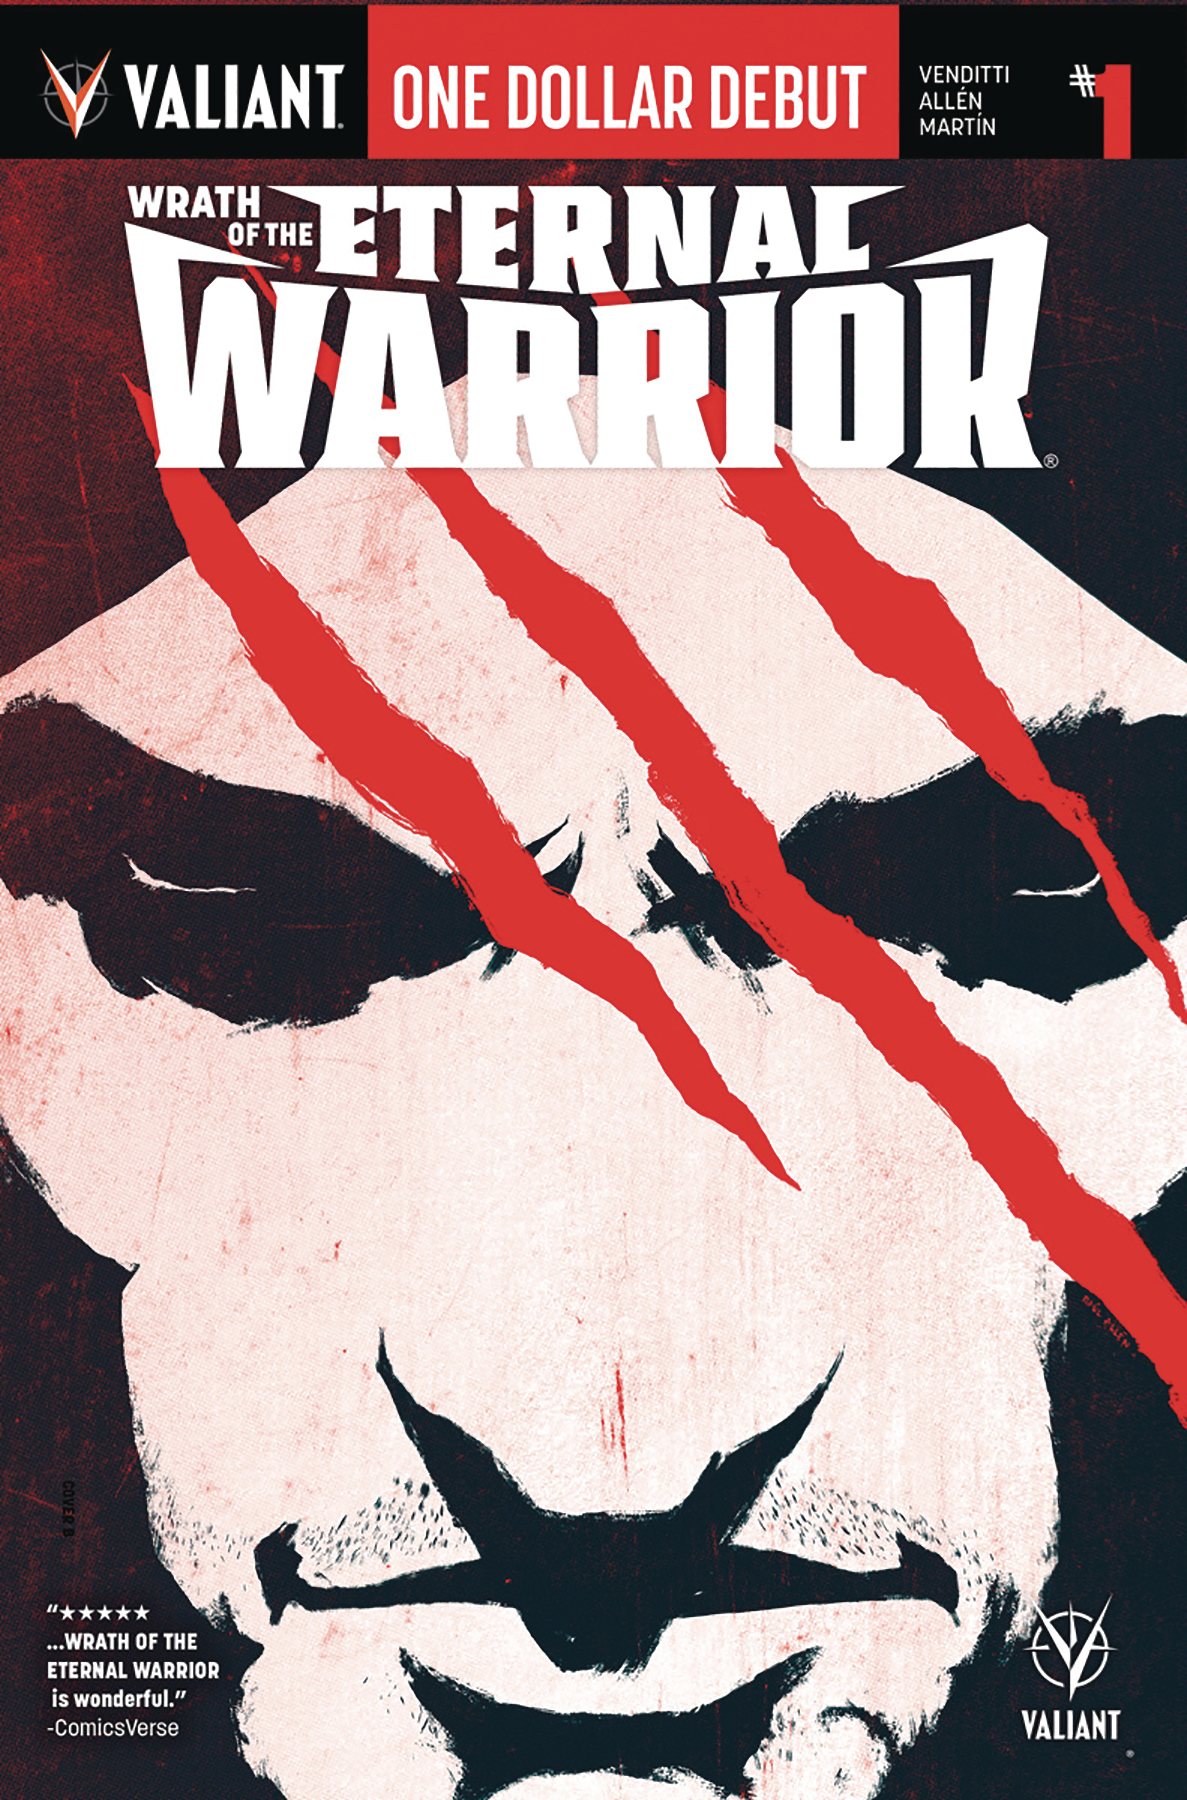 WRATH ETERNAL WARRIOR #1 DOLLAR DEBUT